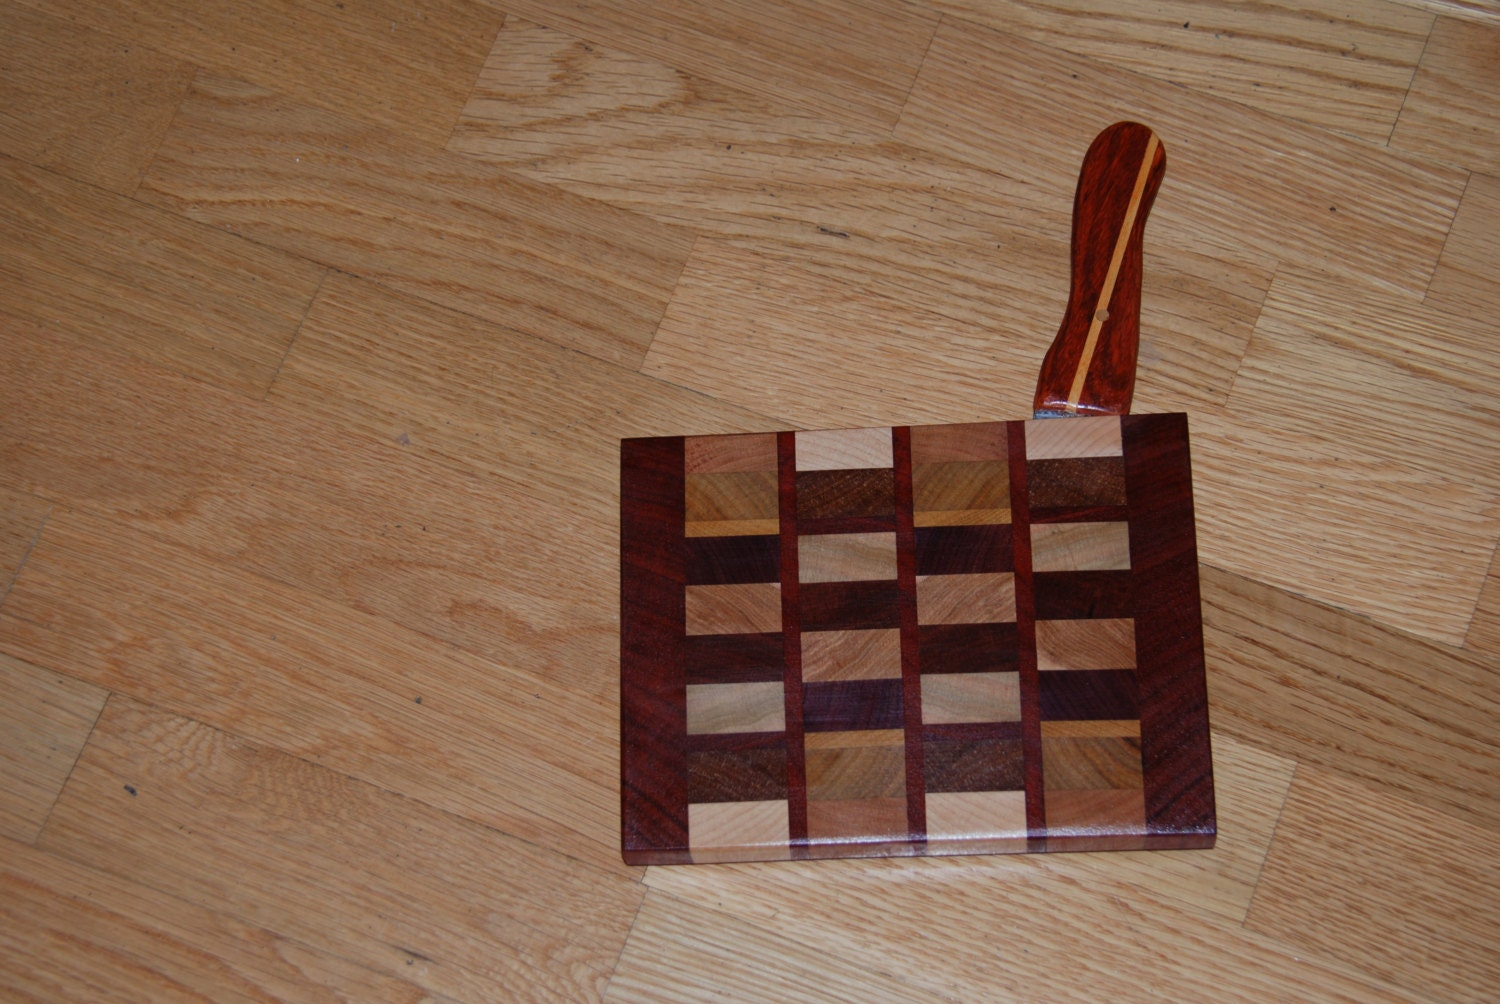 Laminated wood cheese cutting board with knife